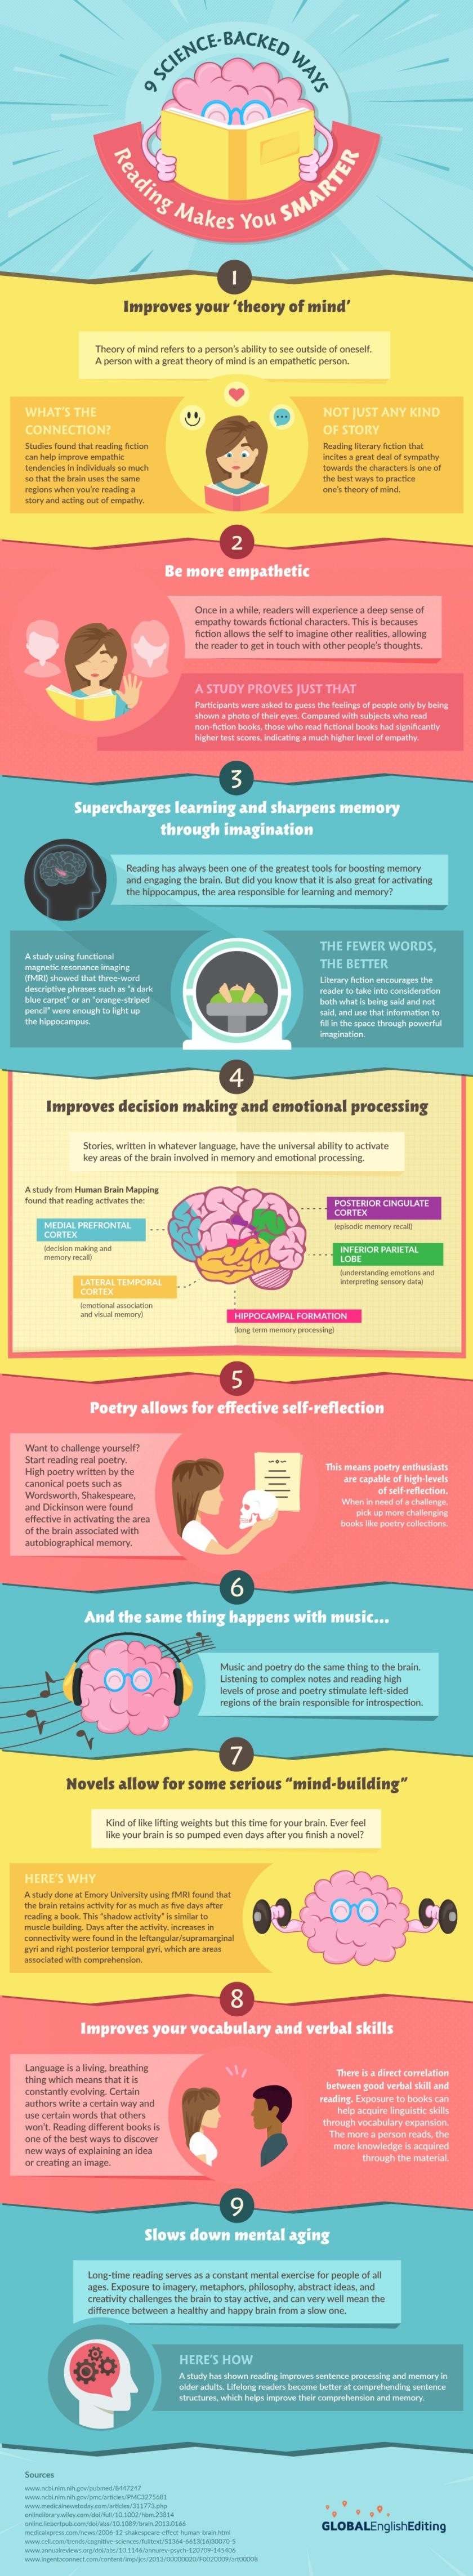 9 science-backed ways reading makes you smarter and better full infographic